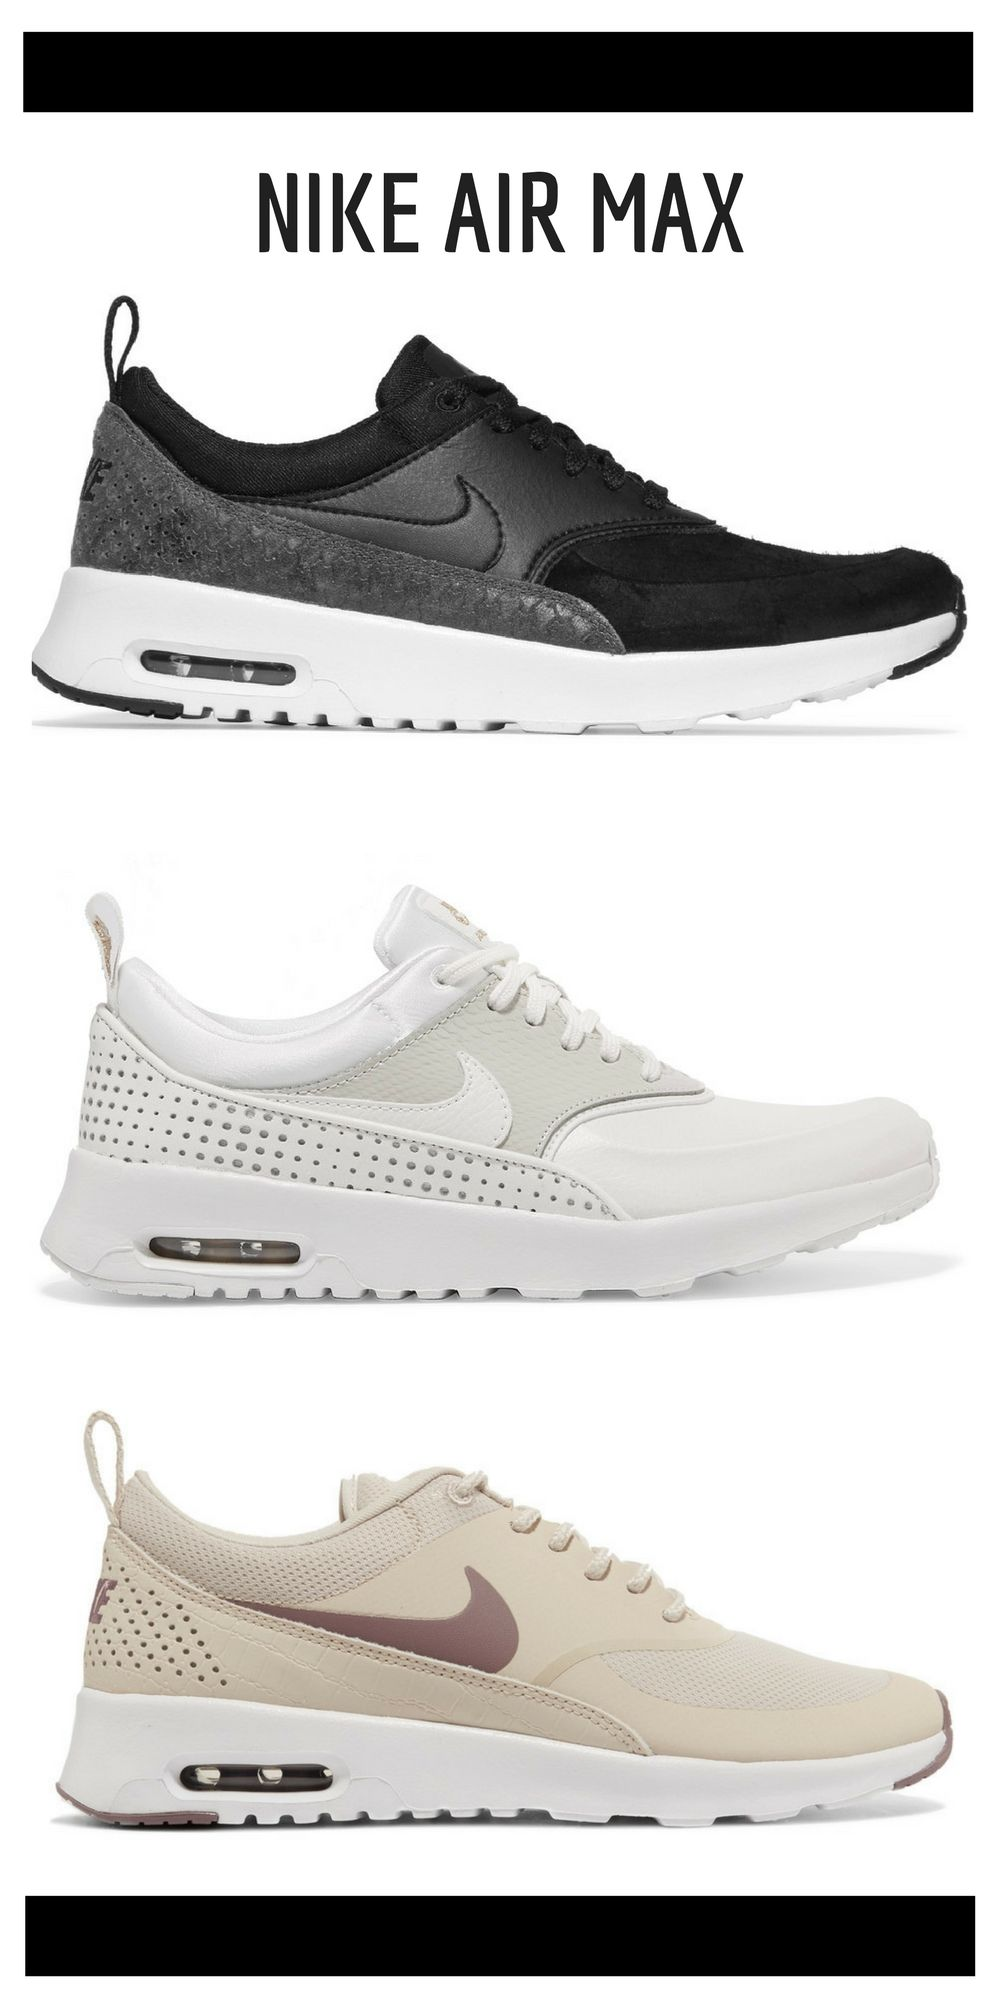 ad Nike Air Max Thea Rubber, Stretch mesh And Croc effect